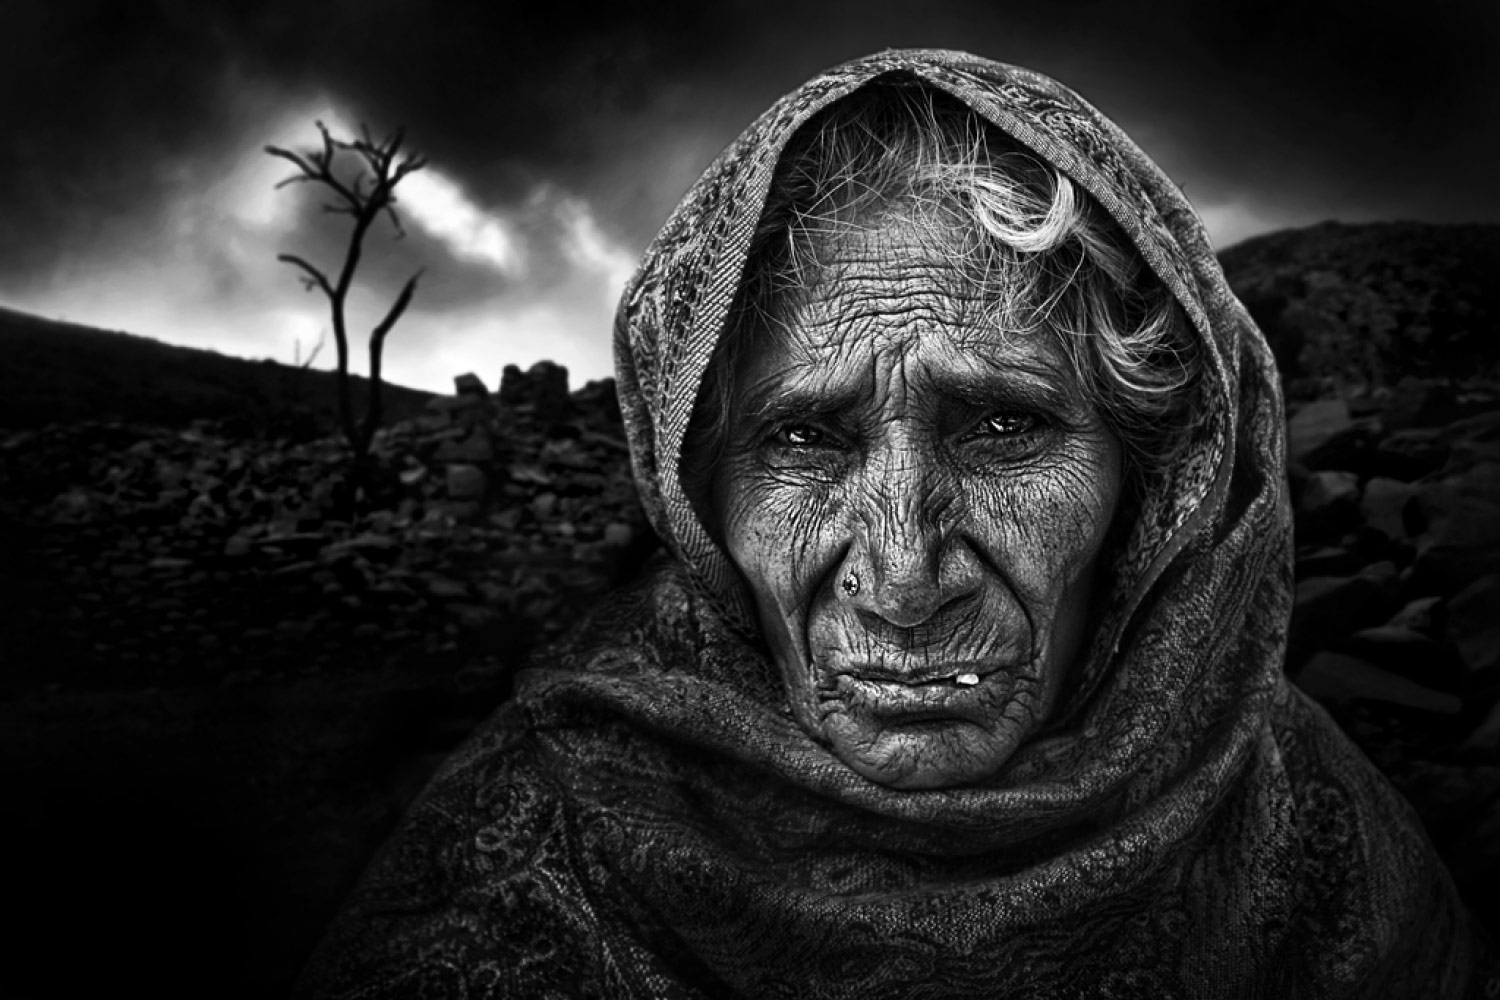 Infinite Sadness, © Luis Maria BARRIO, 2nd Place, Non-Professional - Fine Art and Open, Zebra Awards - TZIPAC Black and White Photographer of the Year